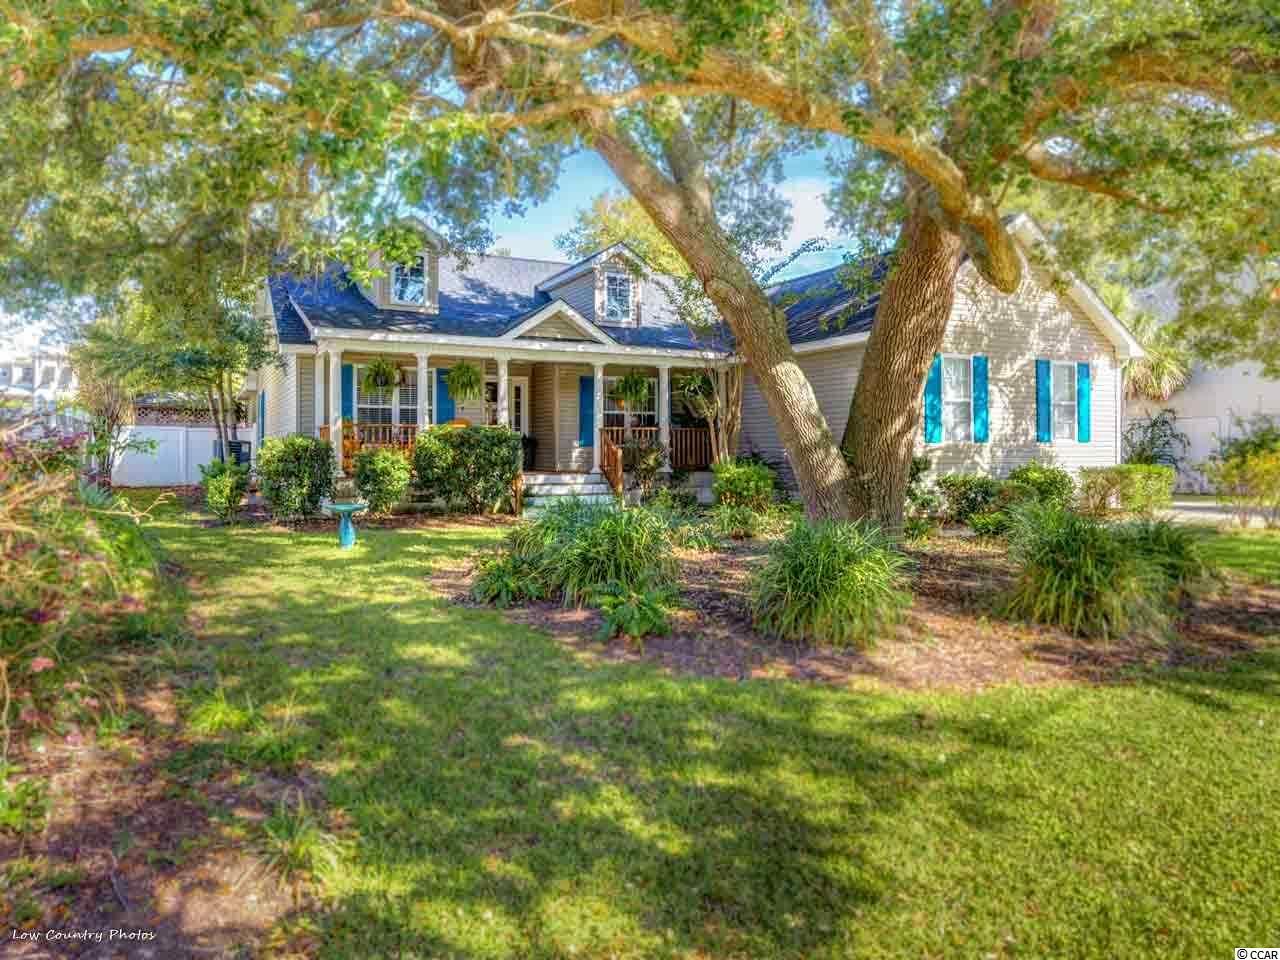 This beautiful ranch-style, open floor plan home is the perfect place for those who love to entertain! The home is placed on a well-landscaped lot and backs up to a freshwater creek, complete with an overlooking deck where you can fish or just relax. Also enjoy the private, heated in-ground pool with slide and fountain, full outdoor bathroom and large screen porch with vaulted ceilings that this private oasis has to offer. Home offers a large concrete driveway where you can easily park your RV, boat and other vehicles. Included with the purchase of this home is a private dock at the end of Edward Ave., which offers salt water access. Easily boat from your dock around the inlet down to the marsh walk, or enjoy a short golf cart ride instead! An incredible live oak completes the front yard, adding shade and beauty you can enjoy from the front porch. Schedule your showing today and experience this one of a kind home in Murrells Inlet!